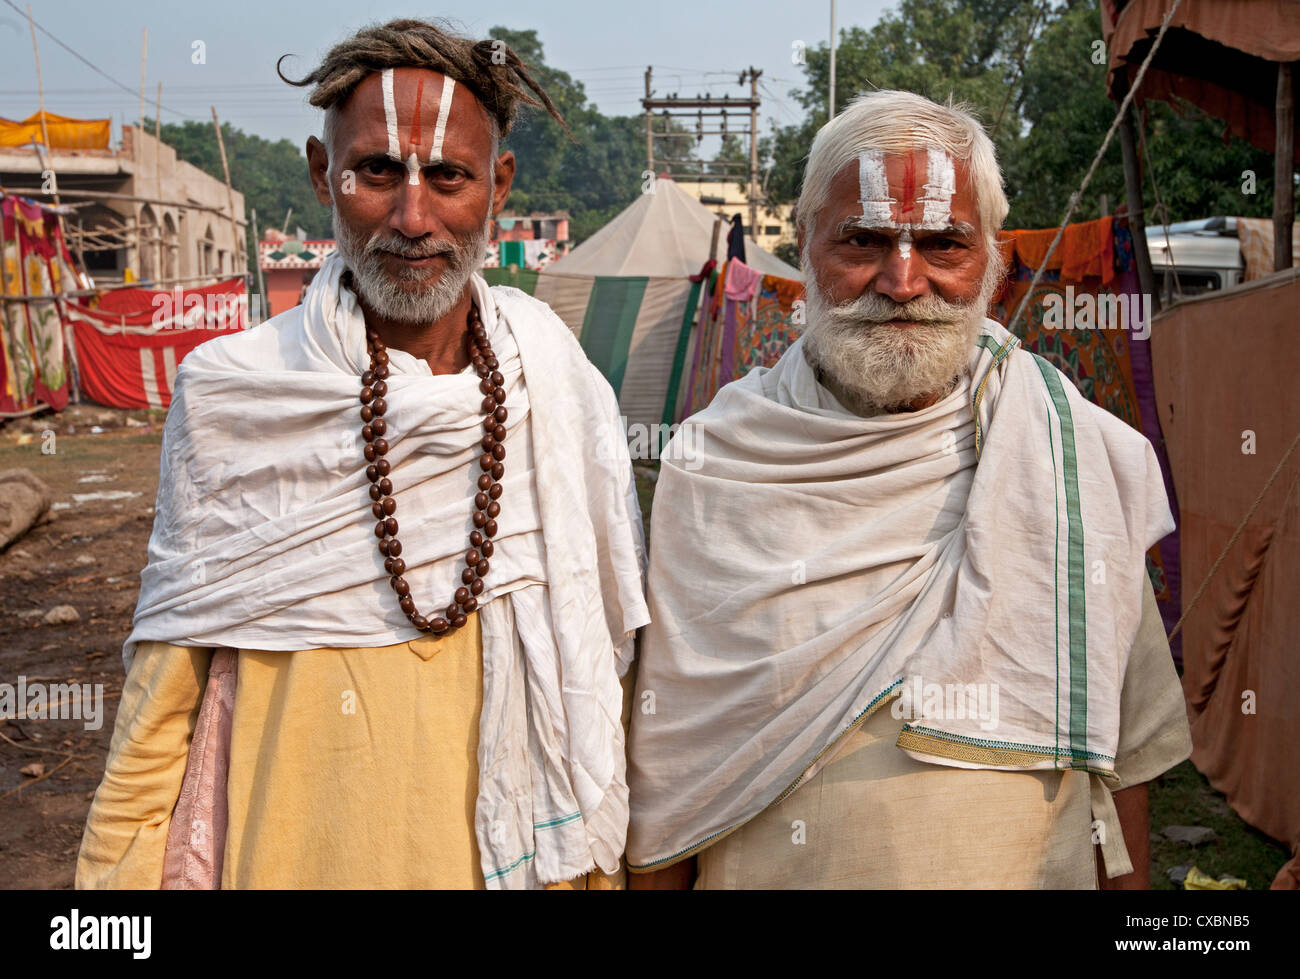 Two men with Vaishnavite sandalwood tilaks on their foreheads, one man with long uncut hair, Sonepur Cattle Fair, - Stock Image